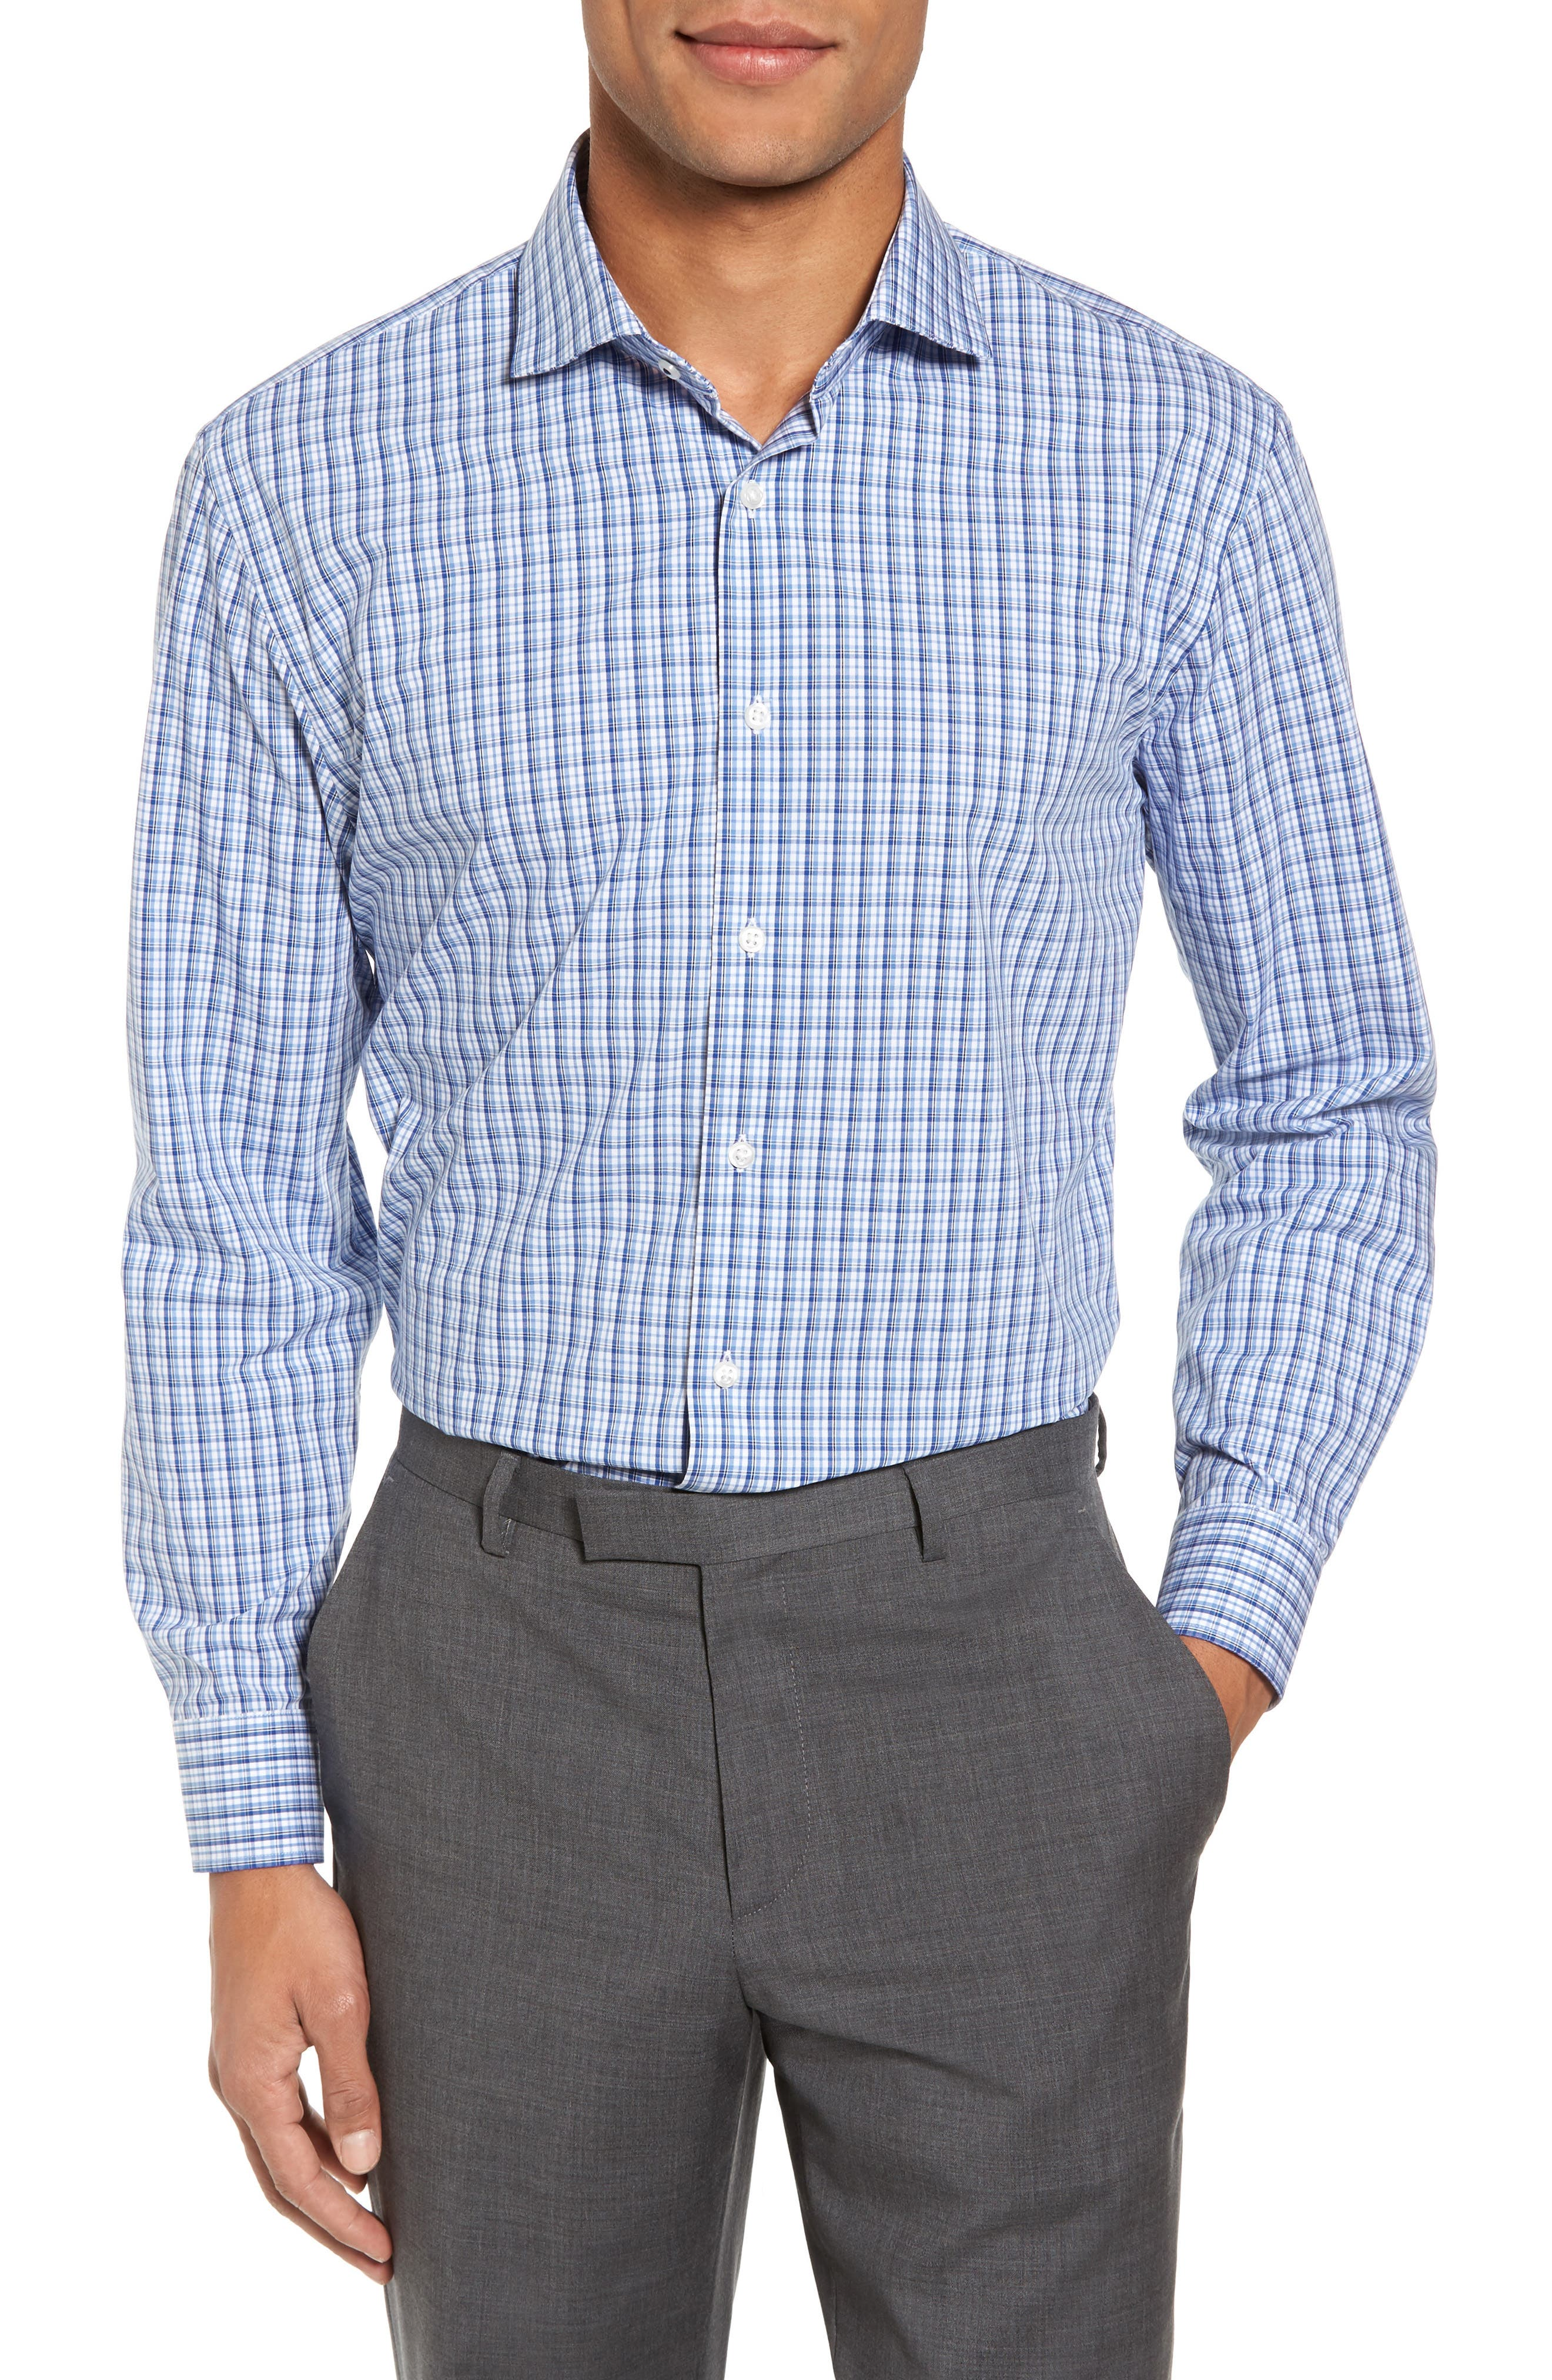 Tech-Smart Trim Fit Stretch Plaid Dress Shirt,                             Main thumbnail 1, color,                             401